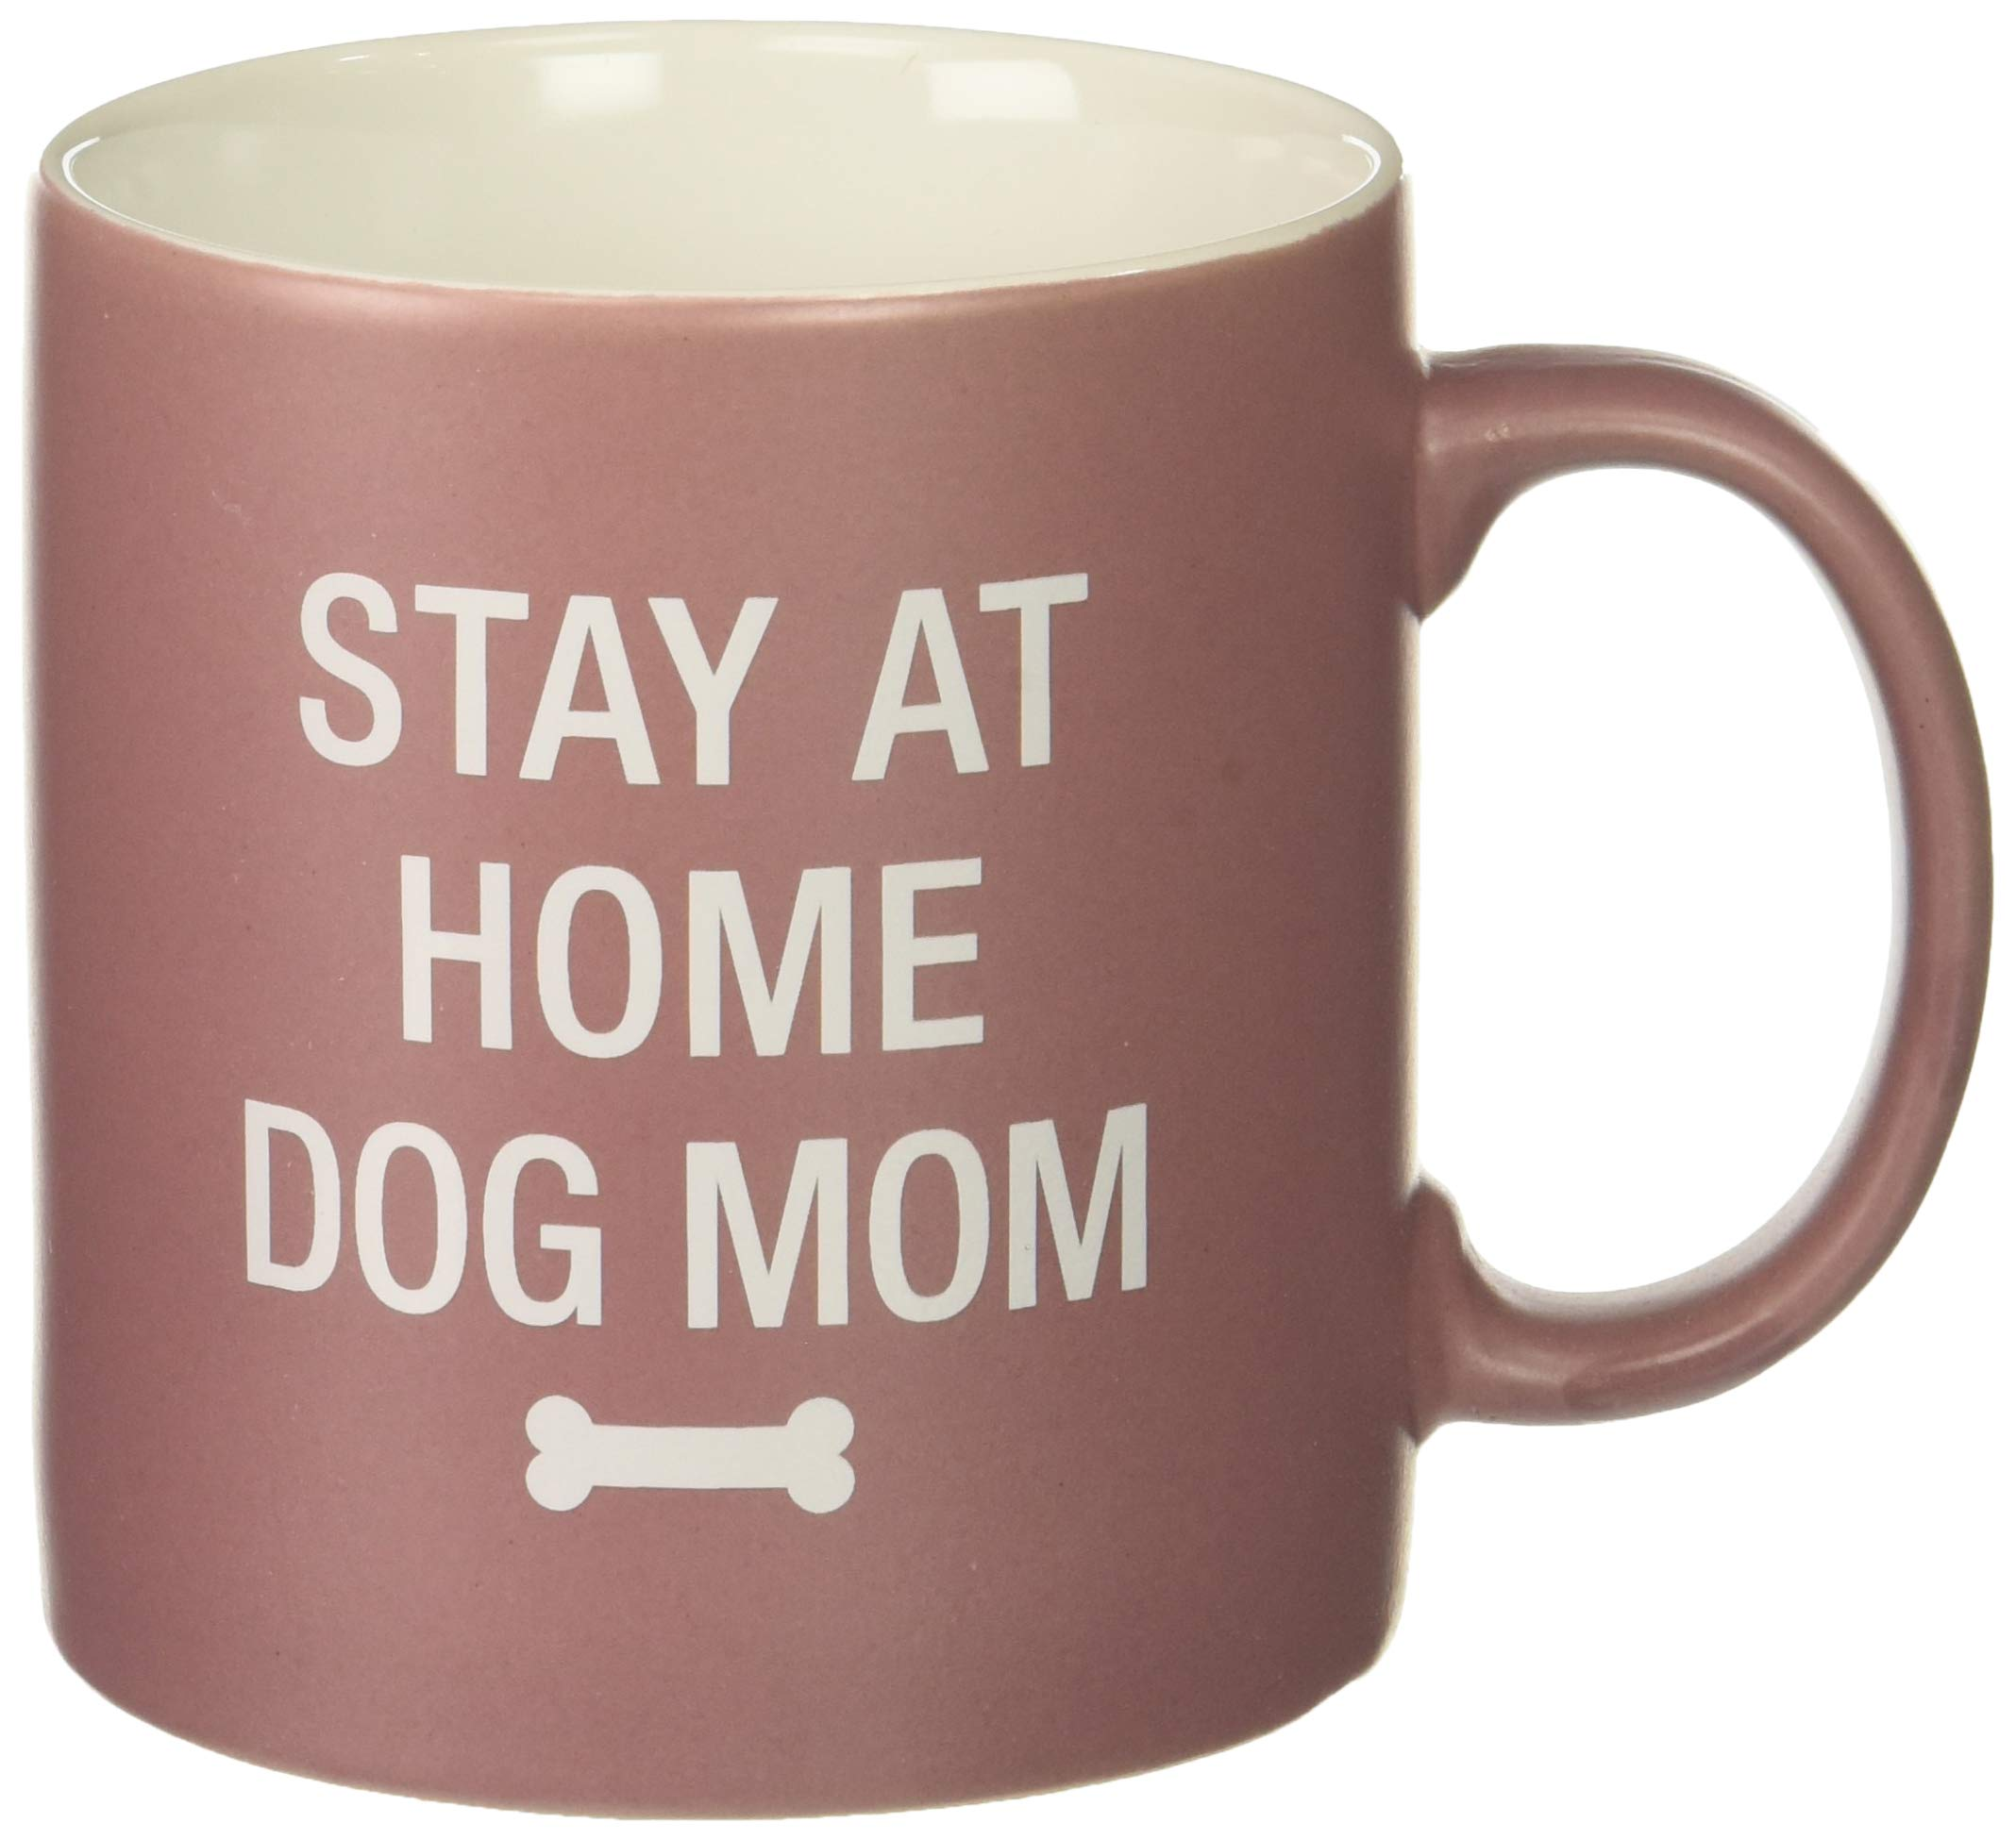 About Face designs 121739 Stay At Home Dog Mom Coffee Mug, 20 oz, lavender